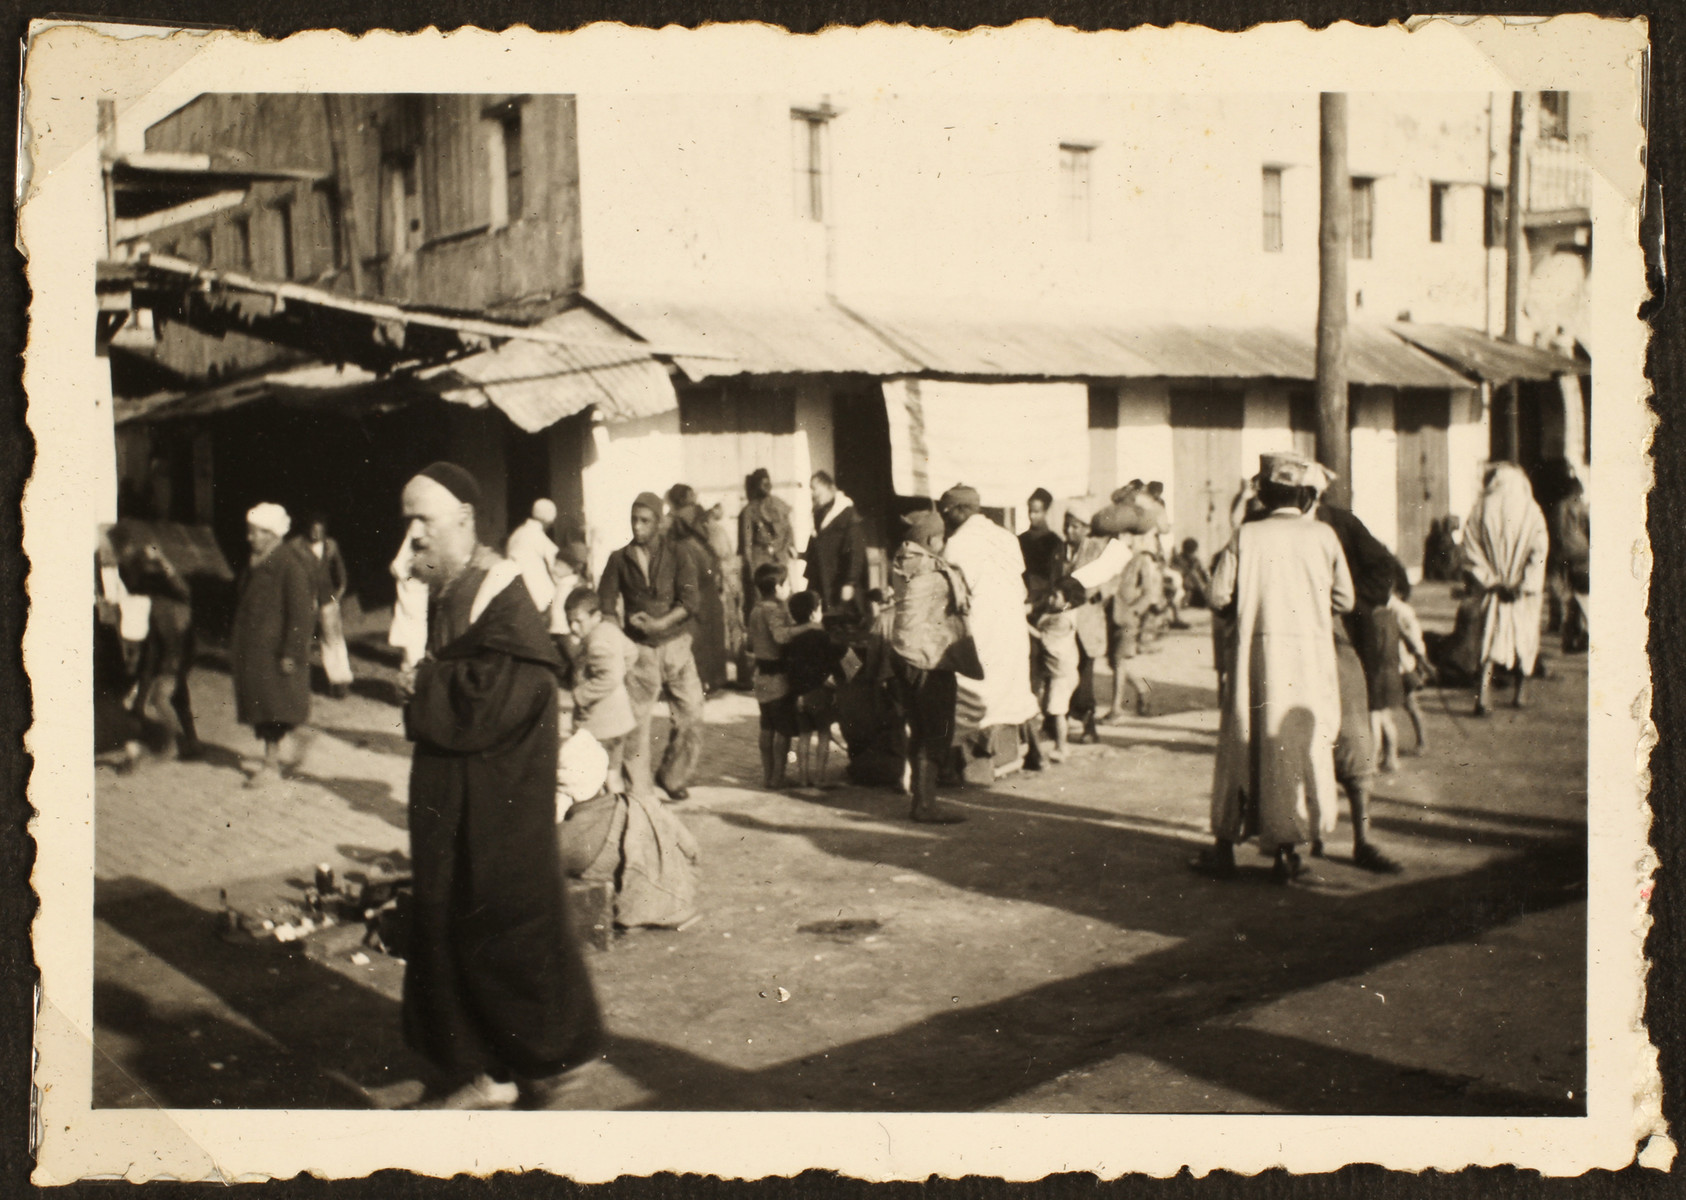 Arabs and refugees walk down a street in Casablanca.